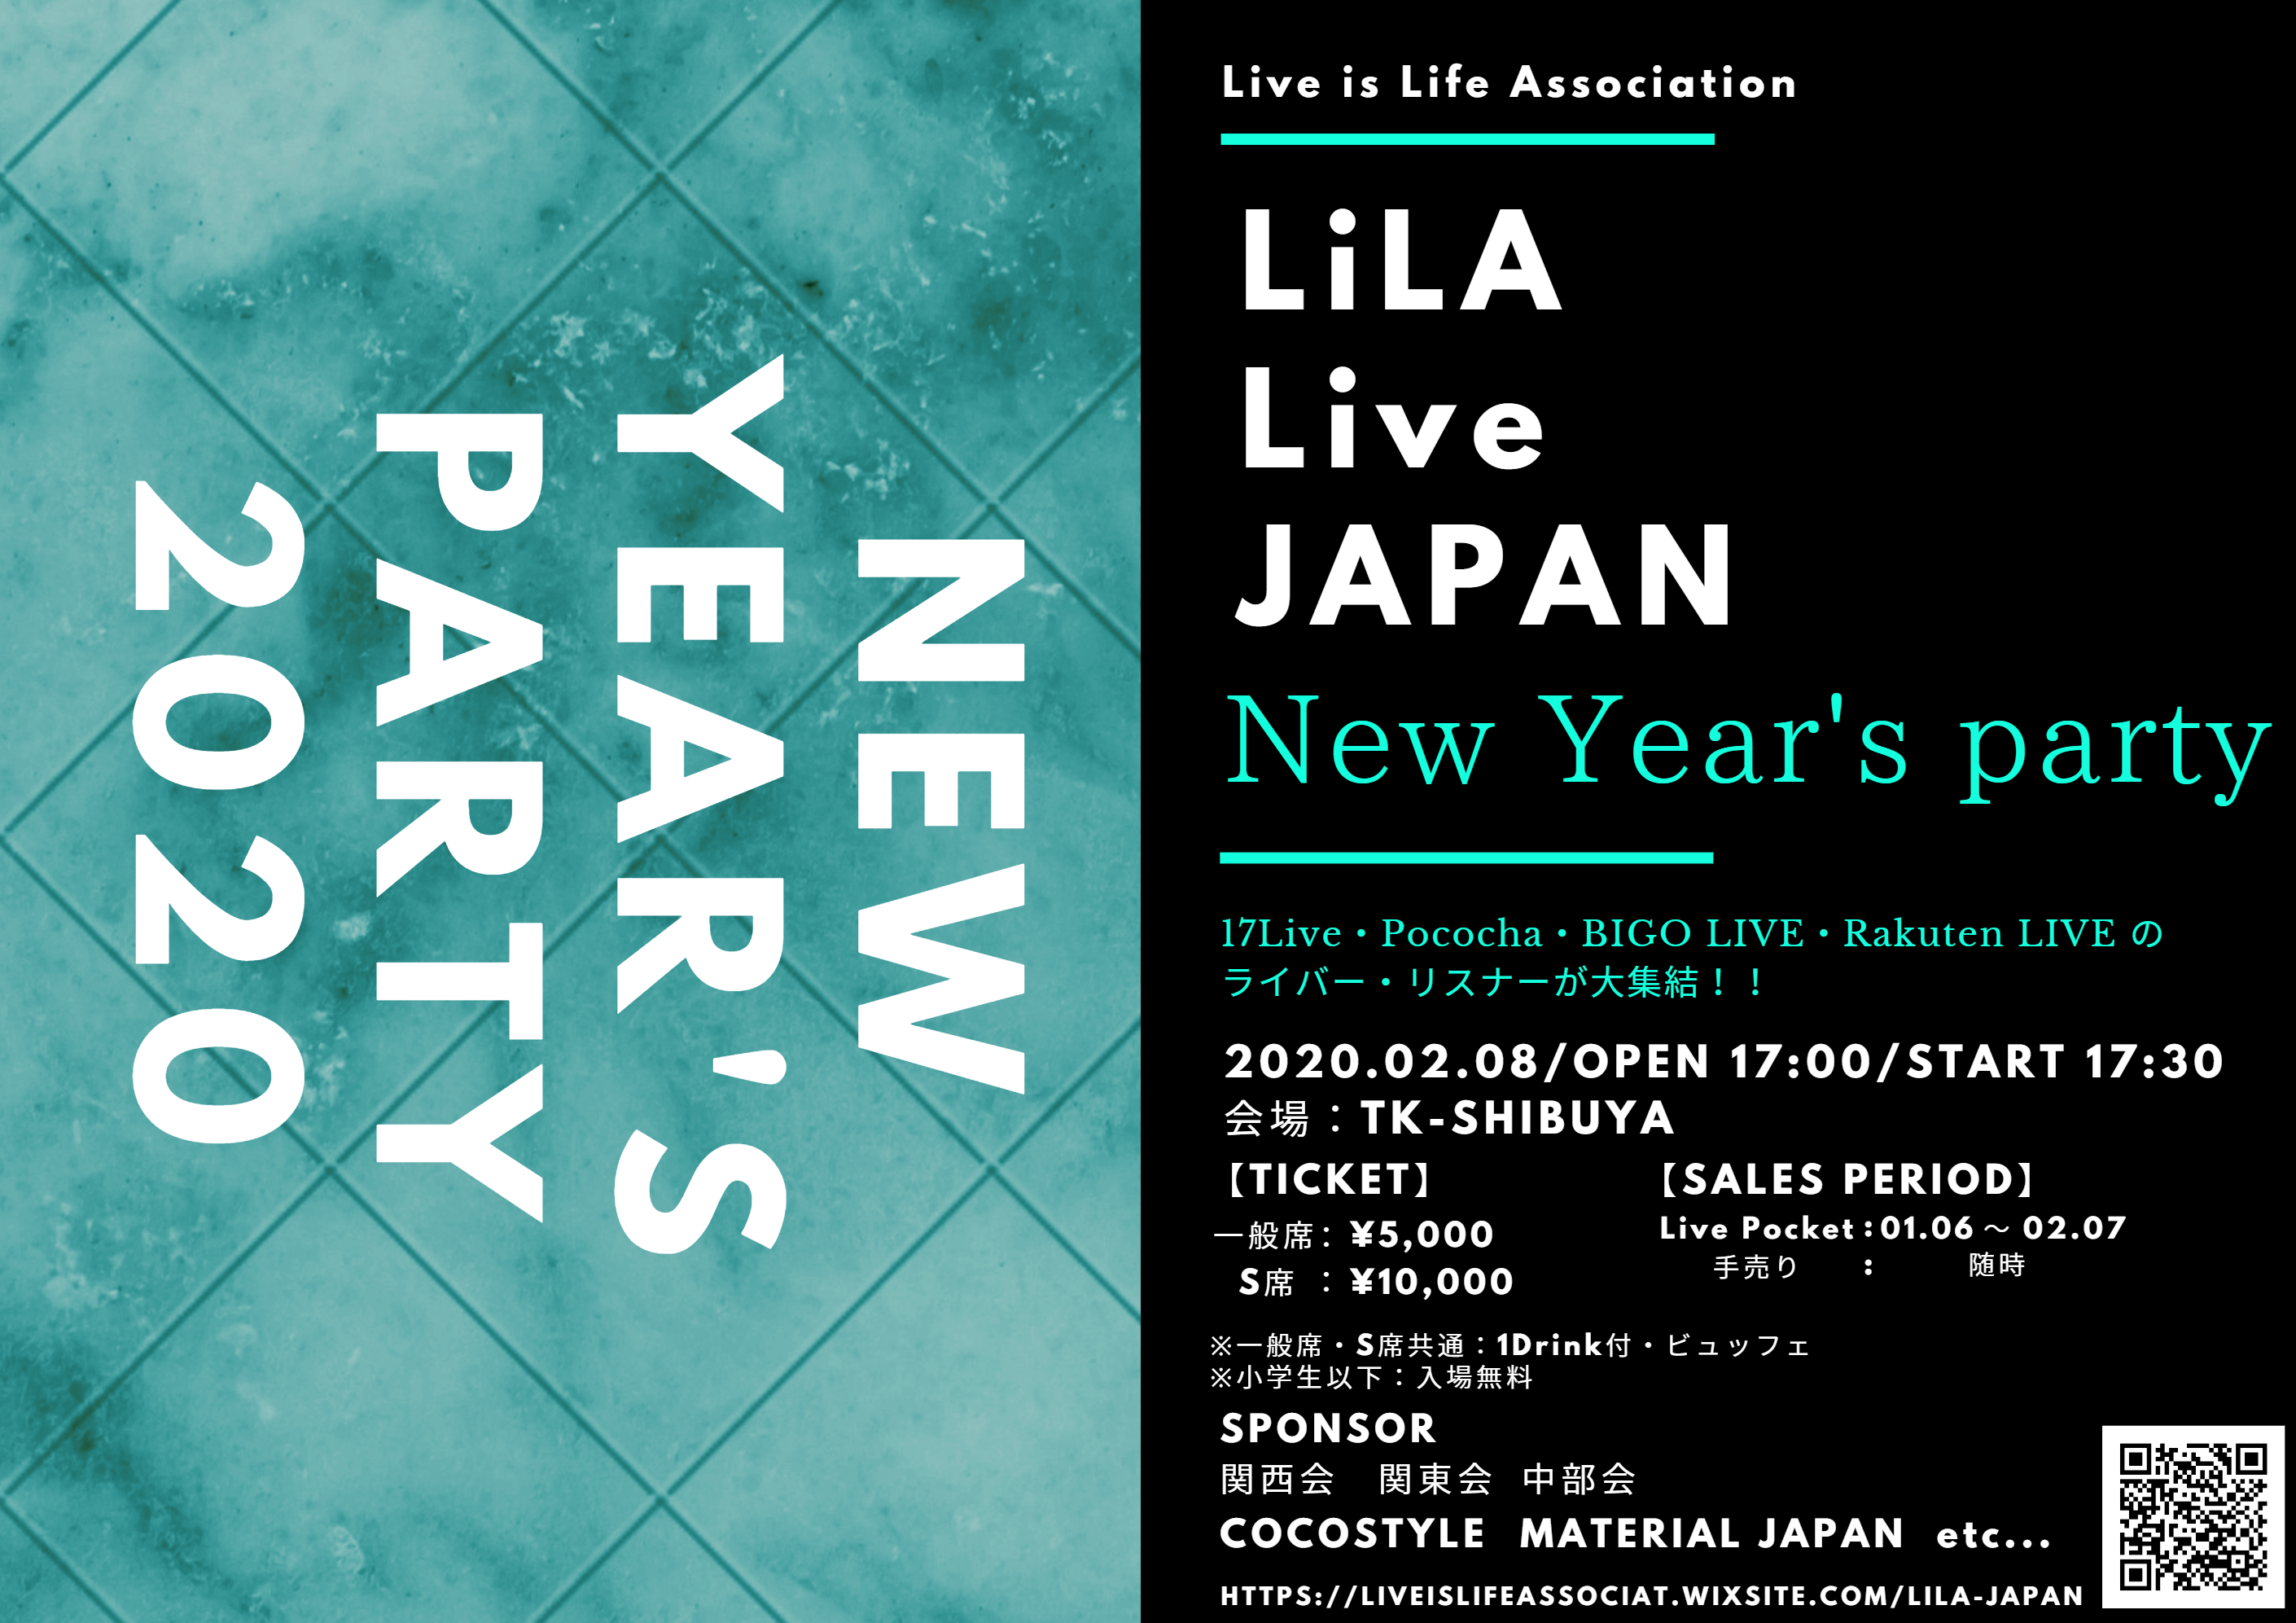 LiLA Live JAPAN New Year's party